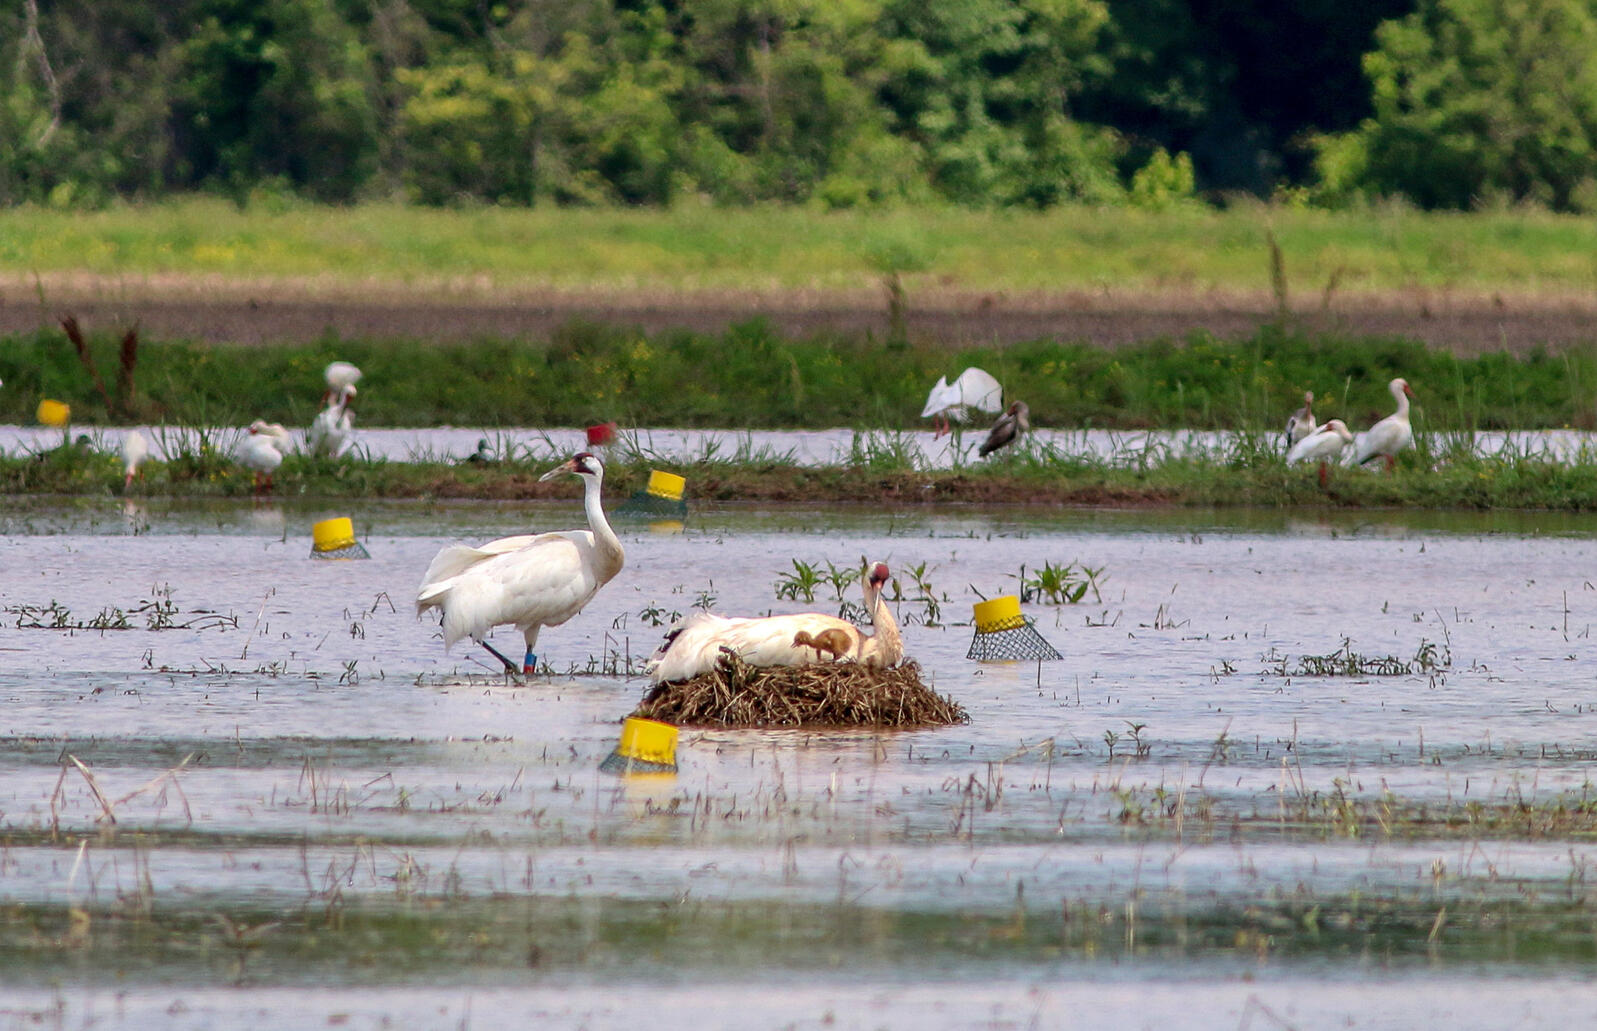 Whooping Crane L8-11 (left) and mate L7-11 on nest with newly hatched LW1-17 in Avoyelles Parish, Louisiana, April 2017. Eva Szyszkoski/Louisiana Department of Wildlife and Fisheries via AP